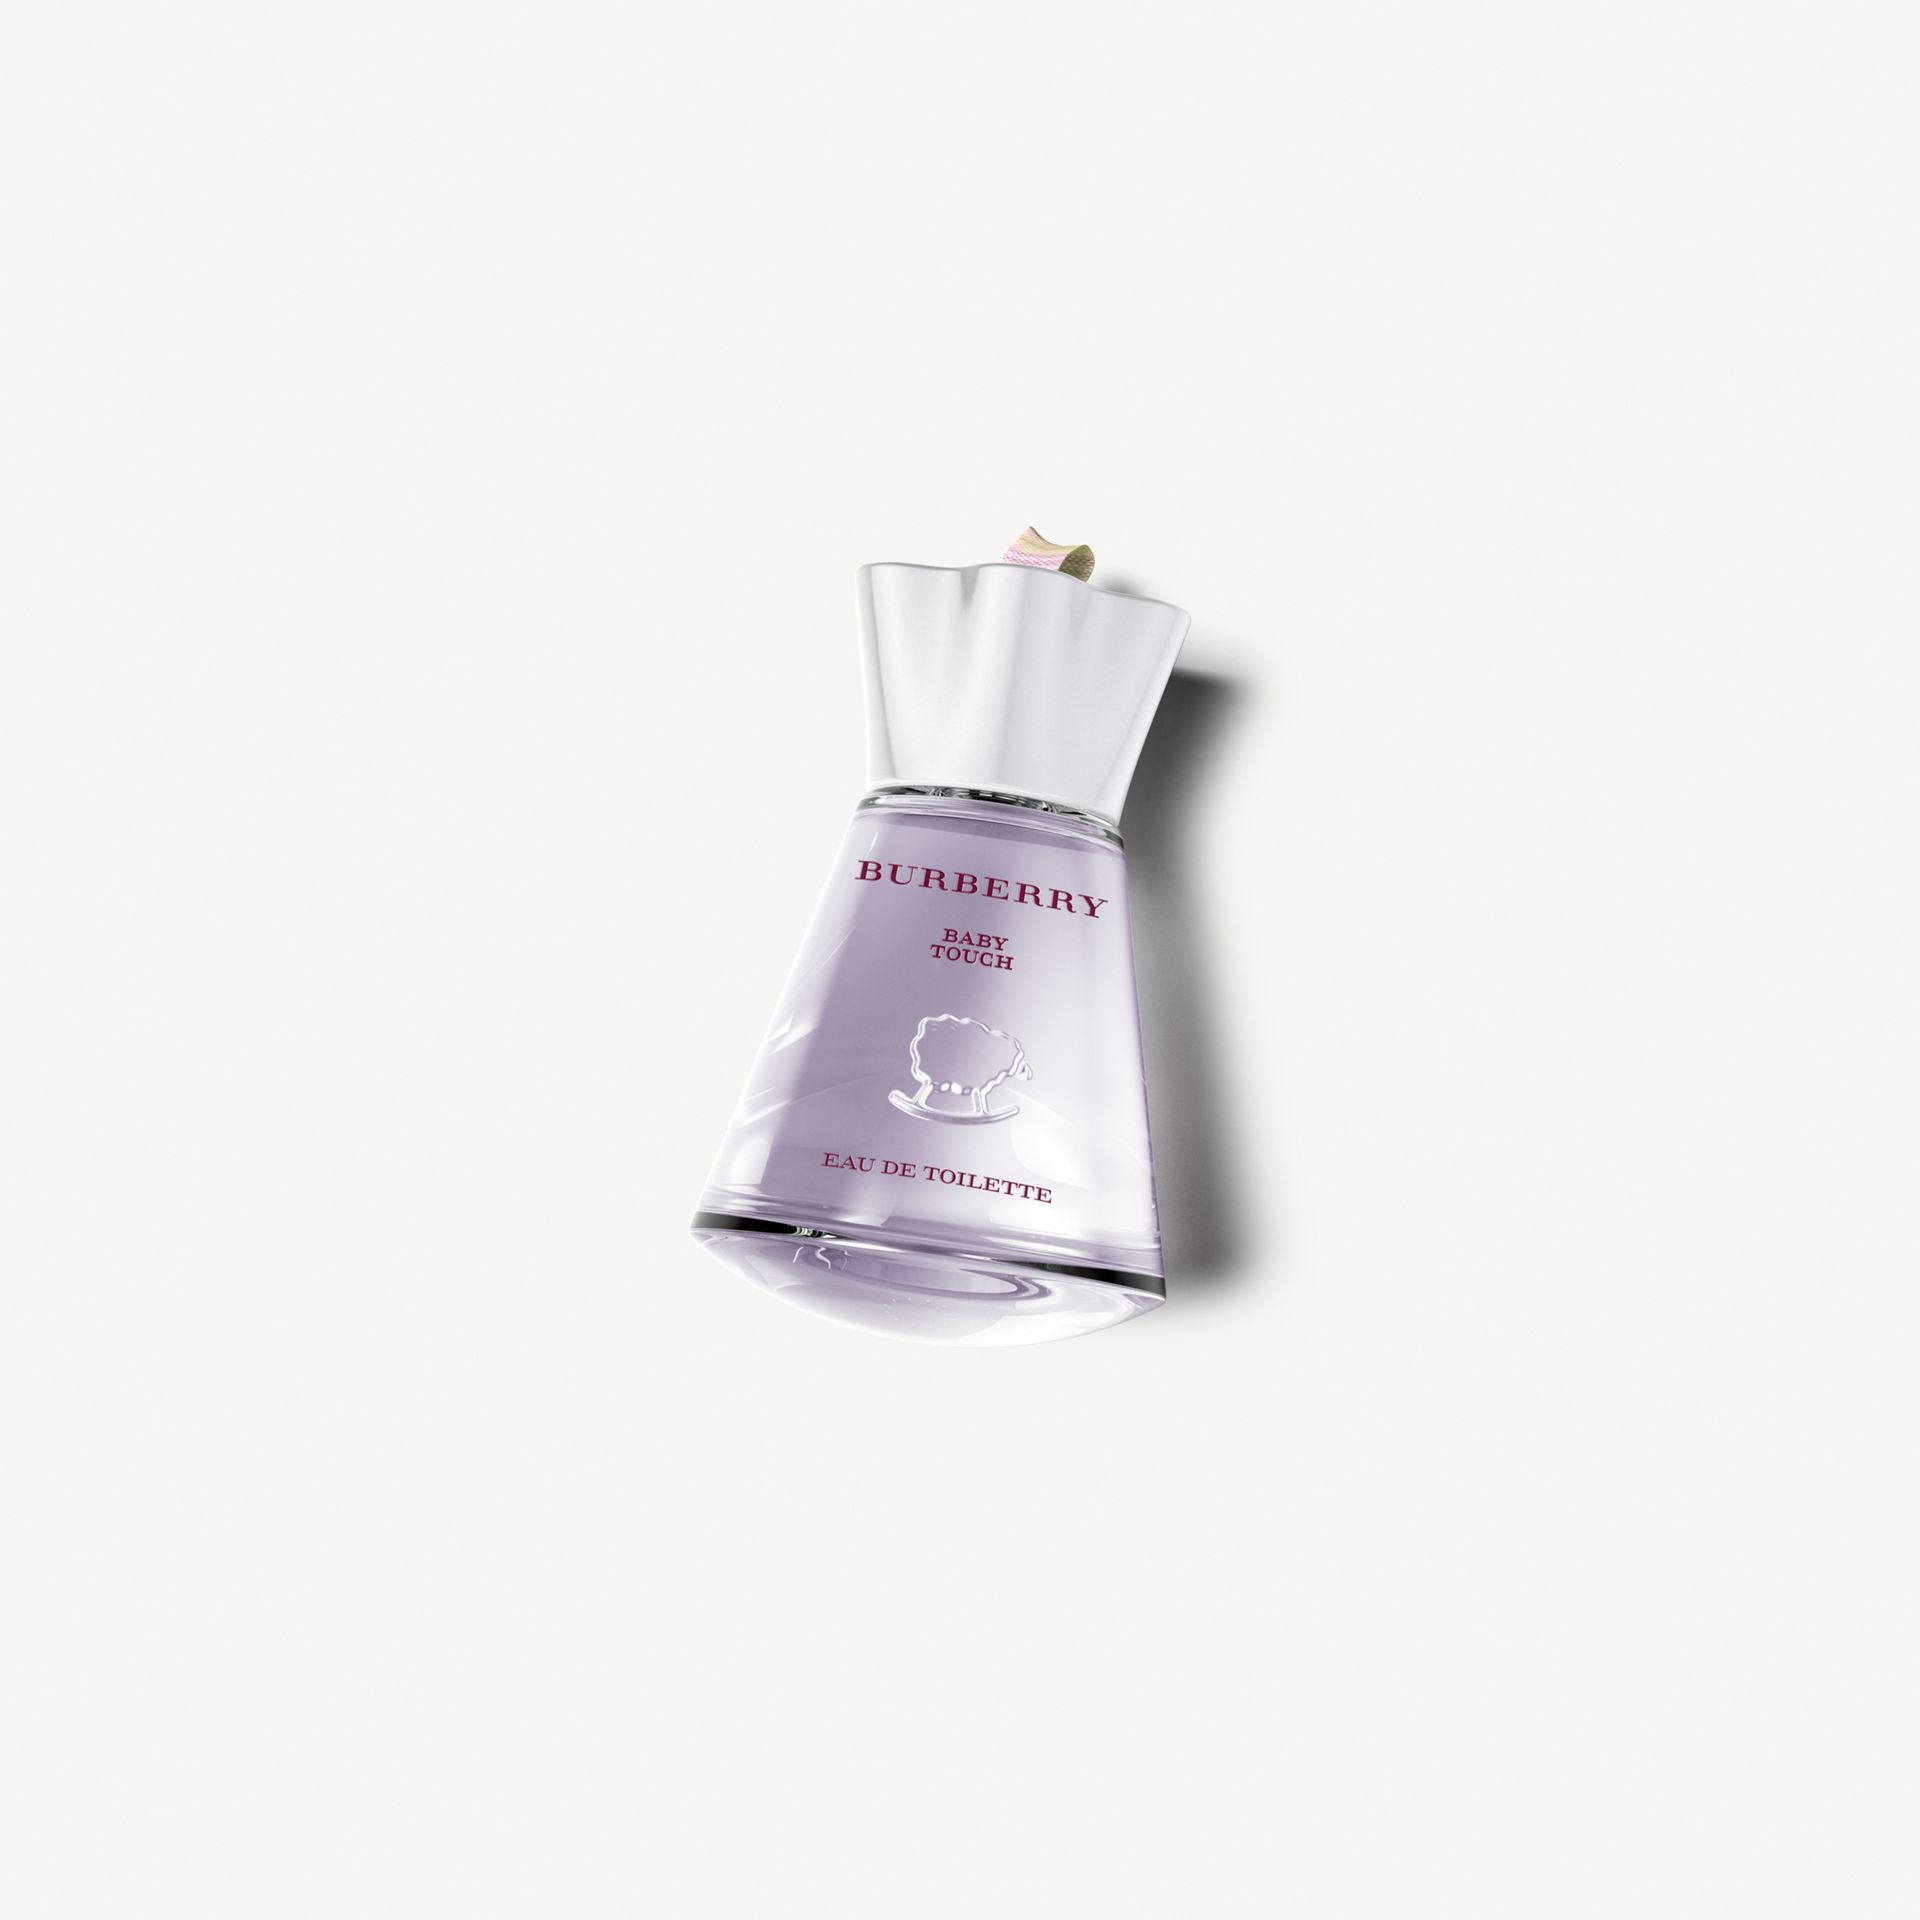 Burberry Baby Touch 100ml - gallery image 1